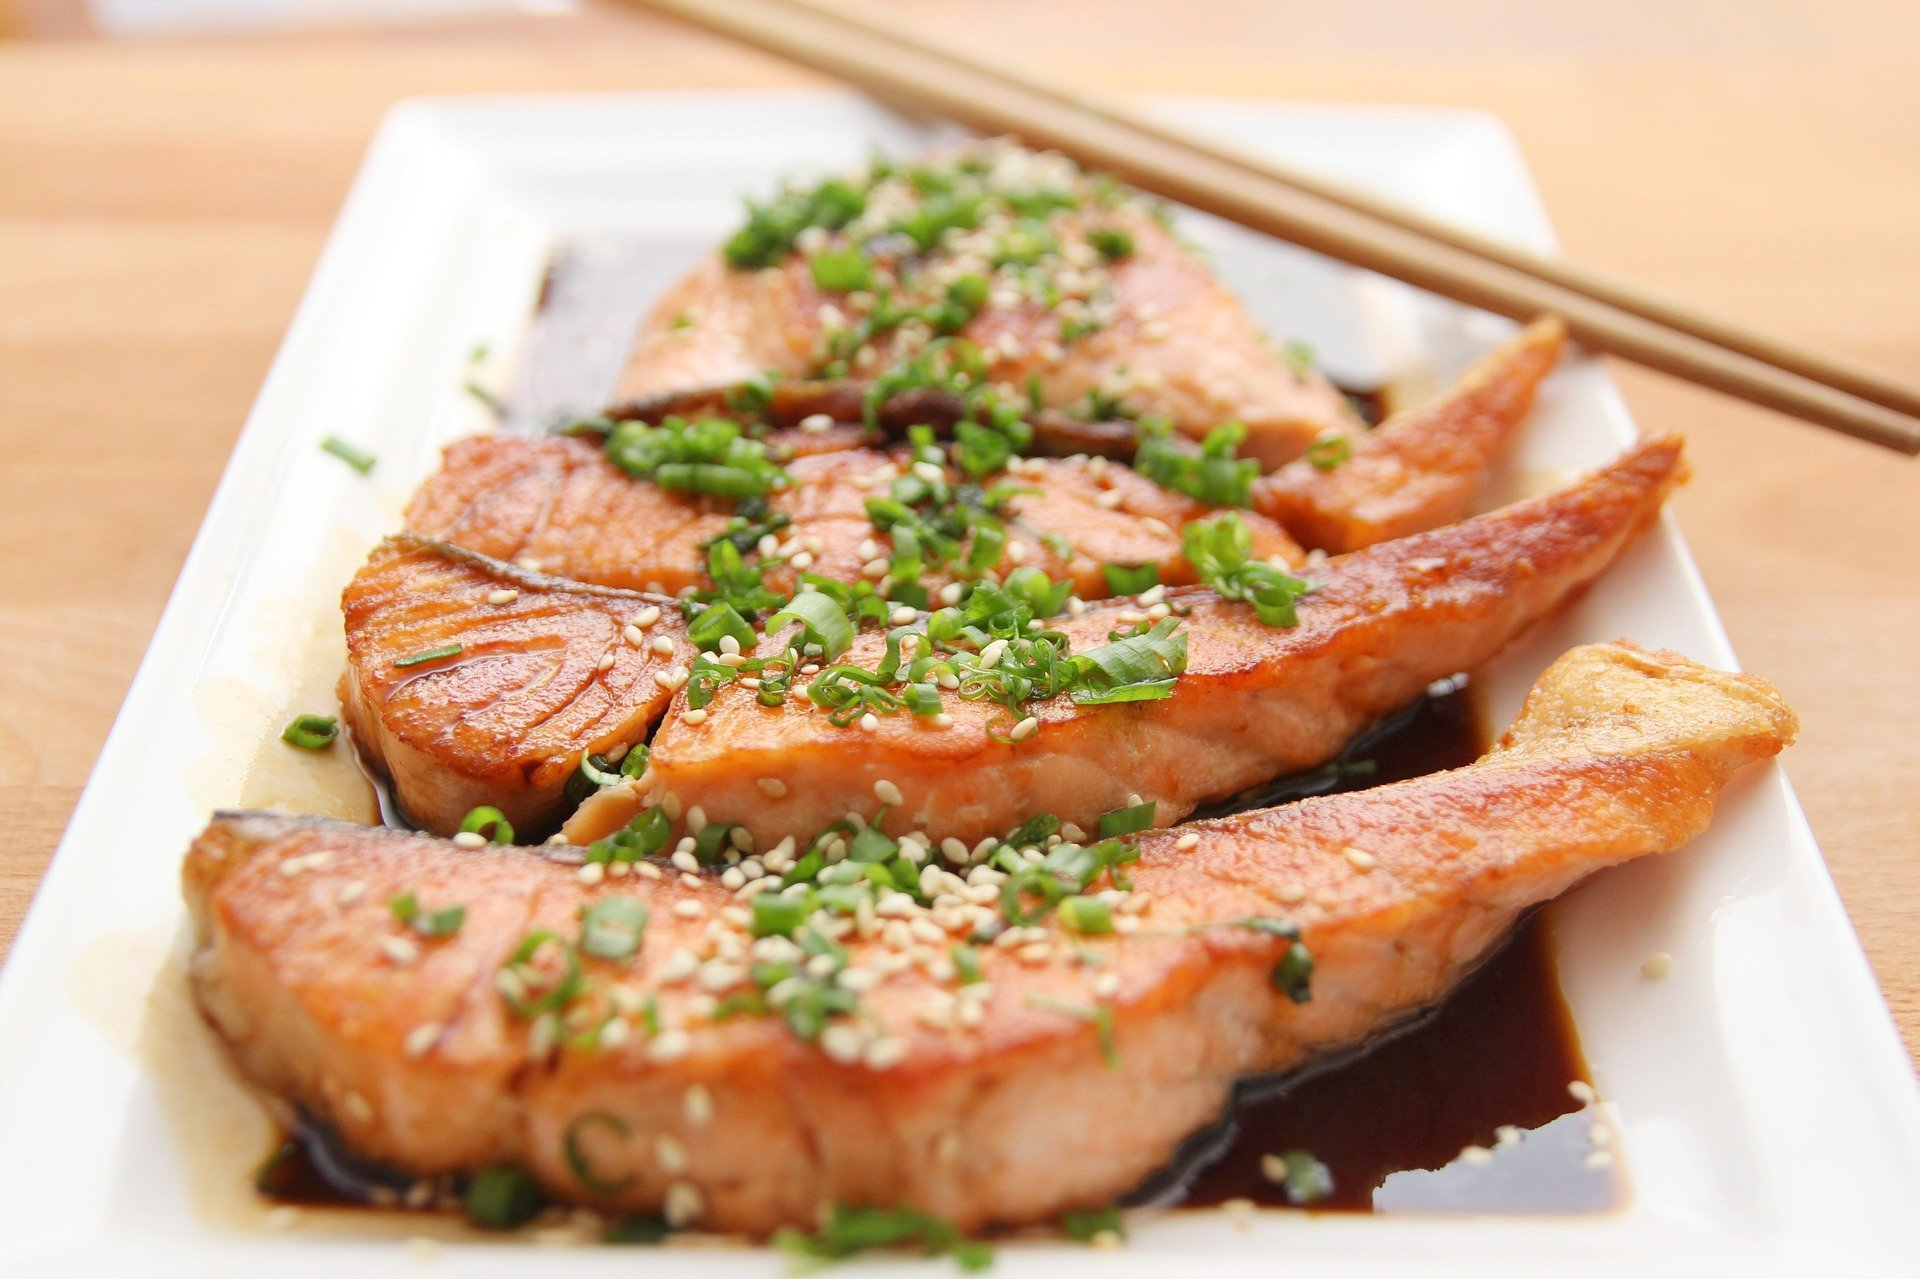 Fish rich diet will help in the fight against asthma